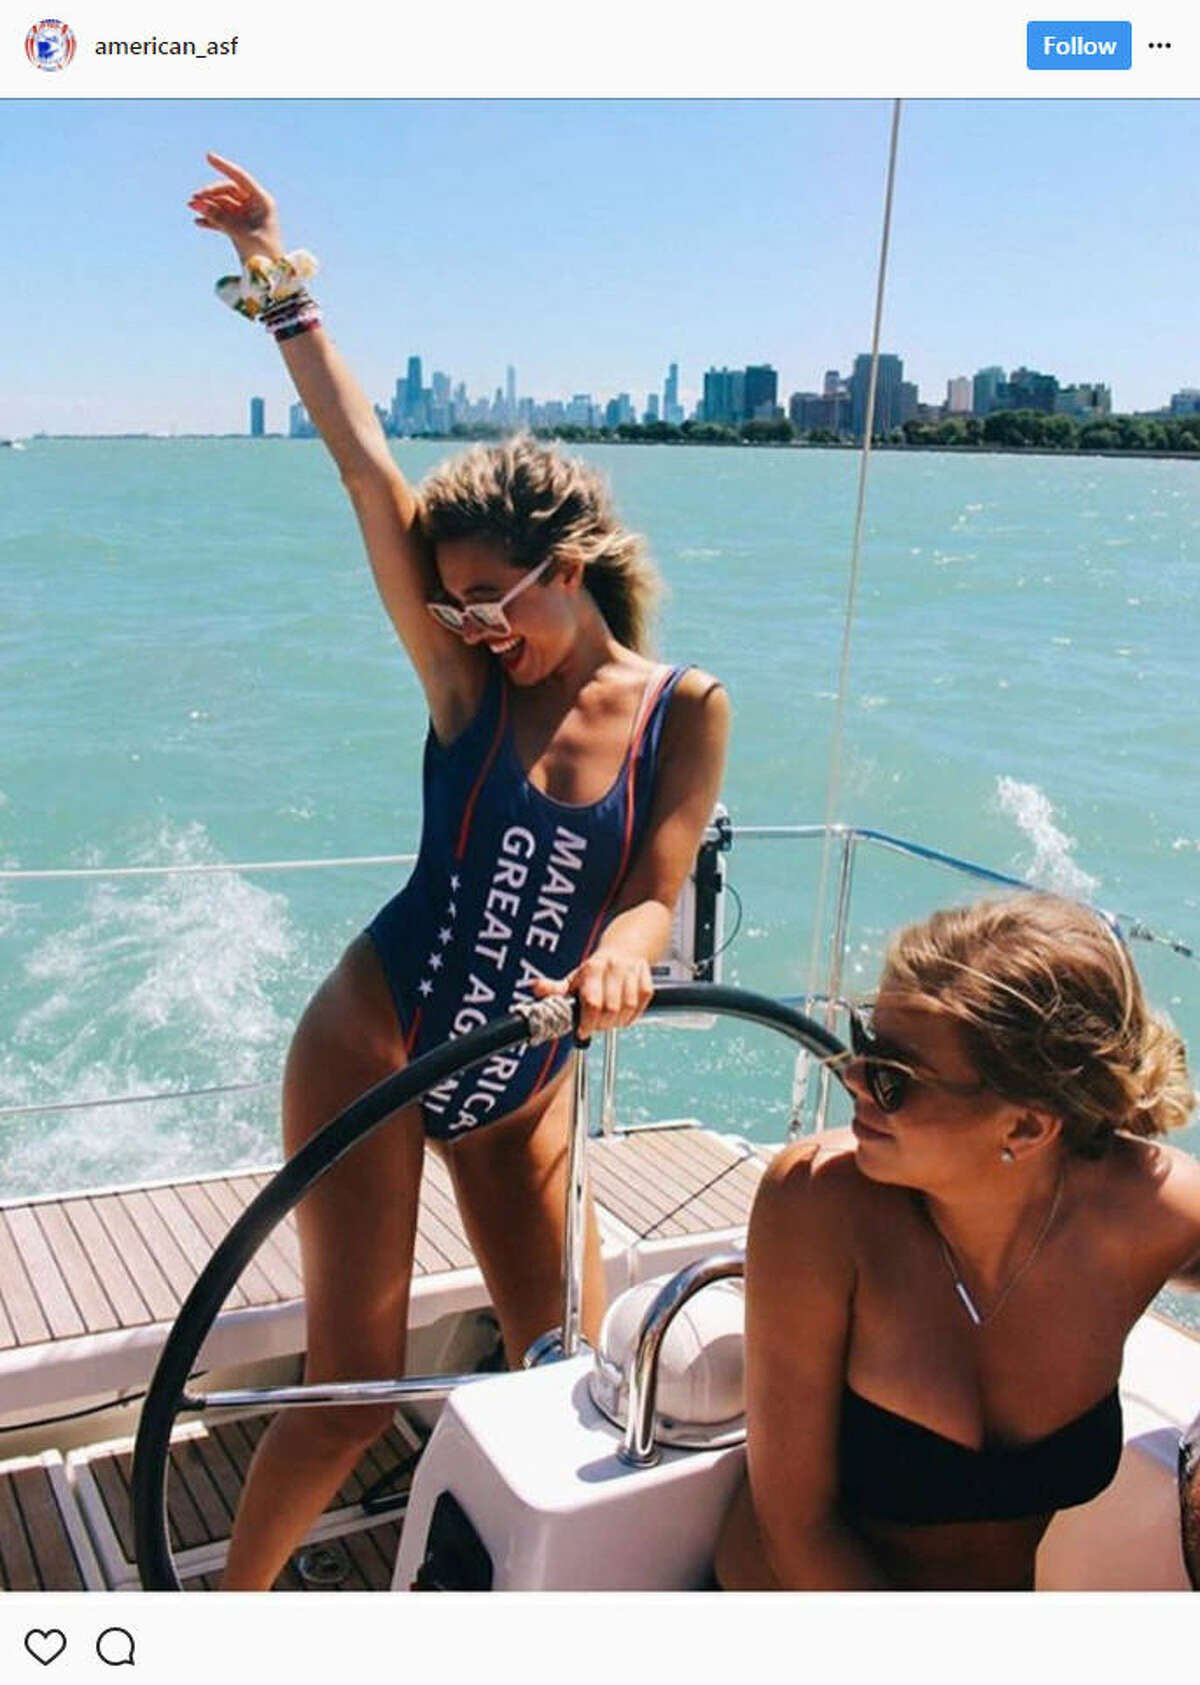 """Dozens of women are sharing photos of themselves boasting """"Make America Great Again"""" swimsuits on social media.Source:Instagram"""